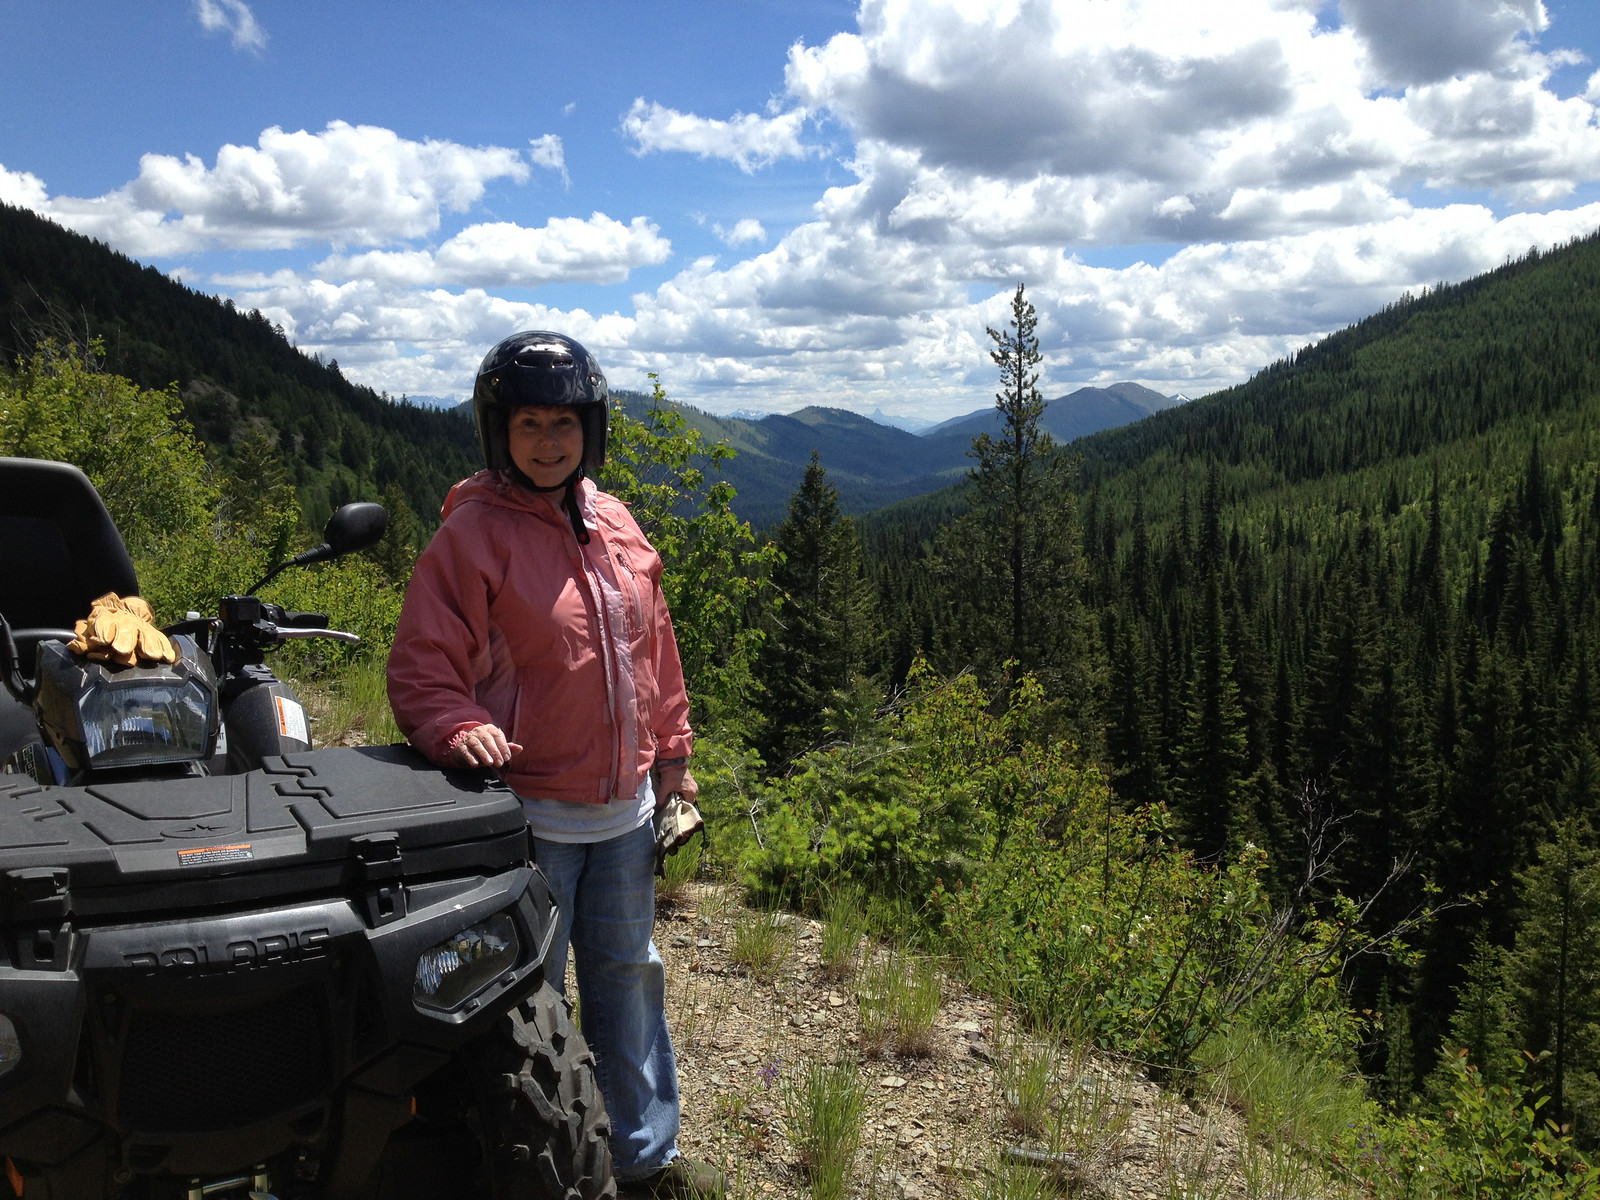 Boomer woman wearing a helmet stands next to an ATV with mountain scenery behind her.